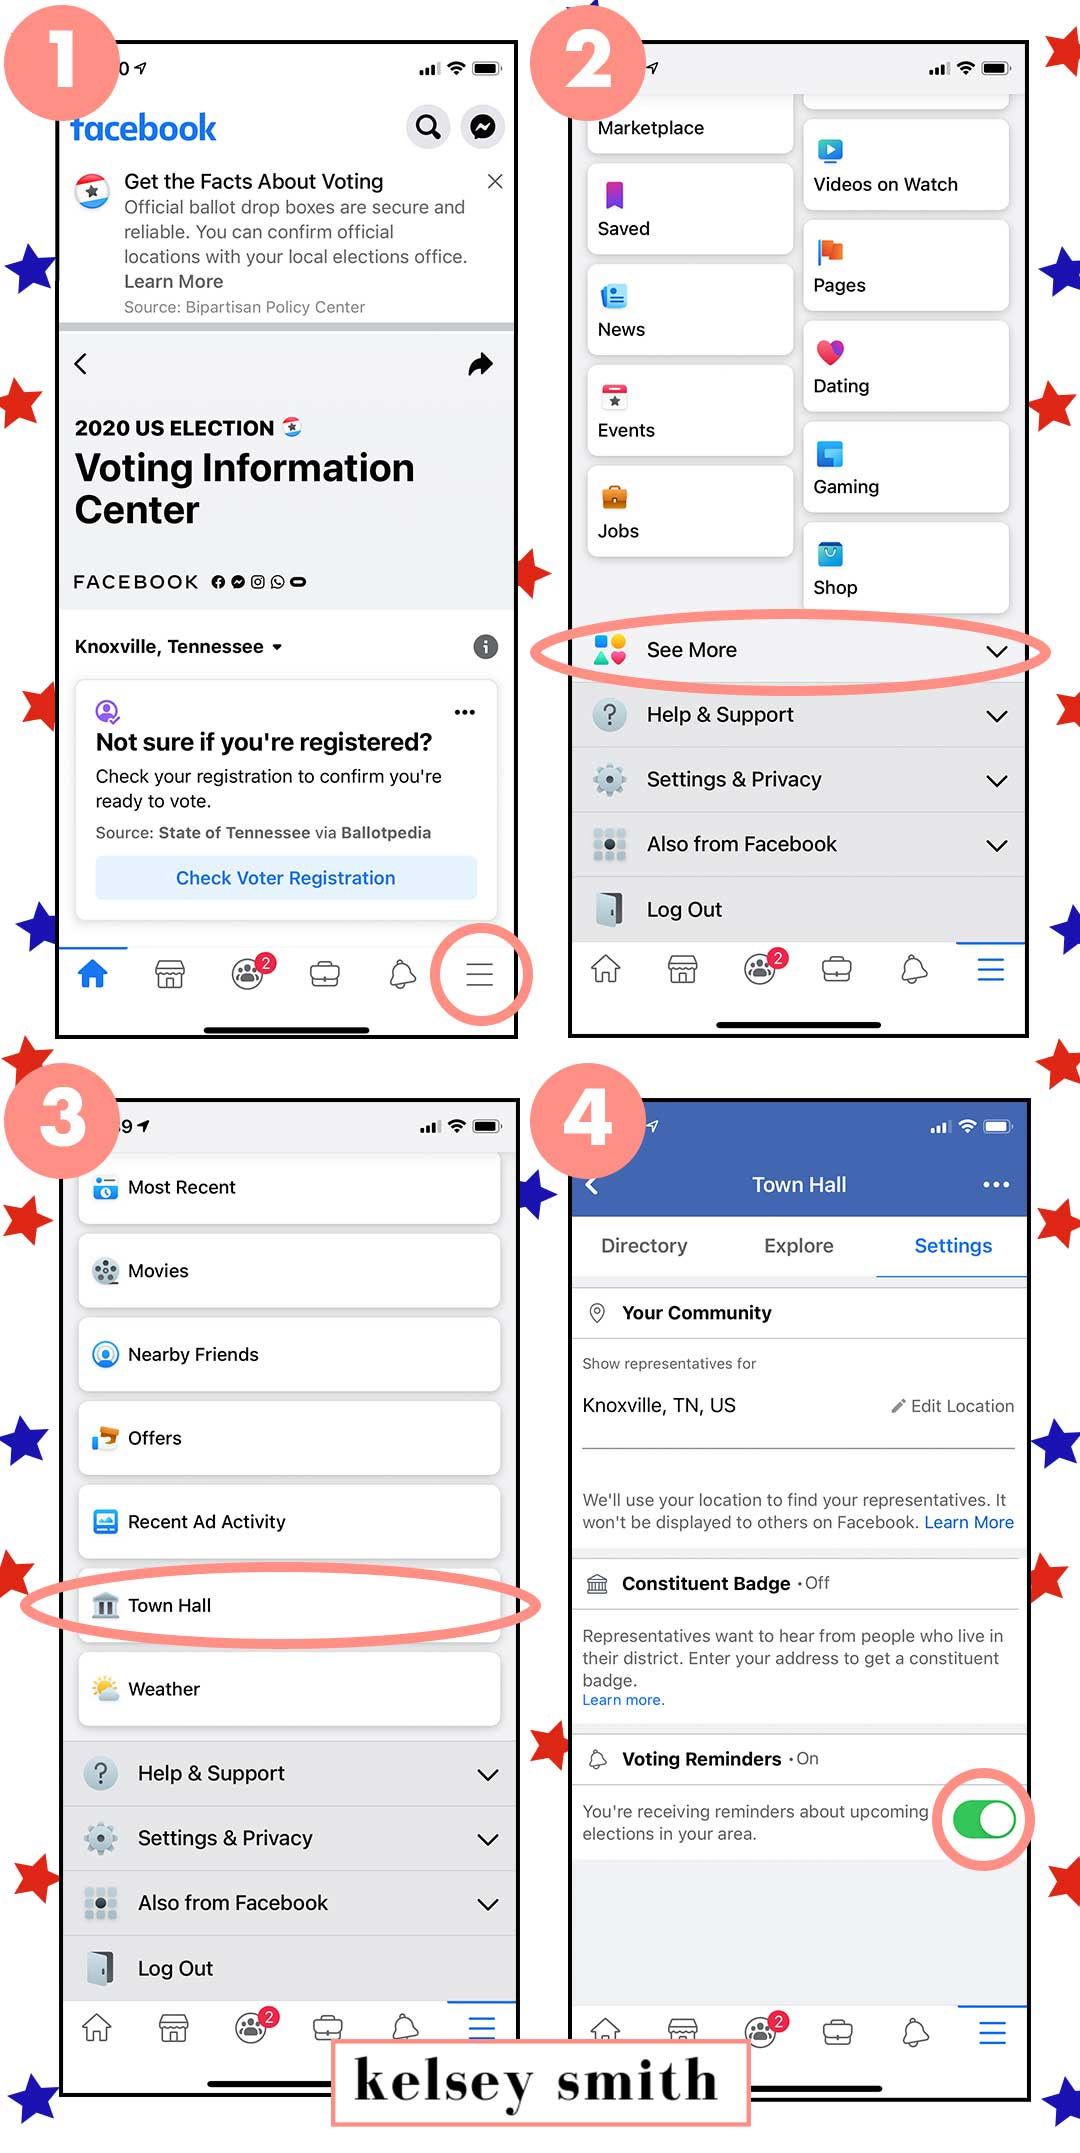 How to Disable Voting Reminders on Facebook